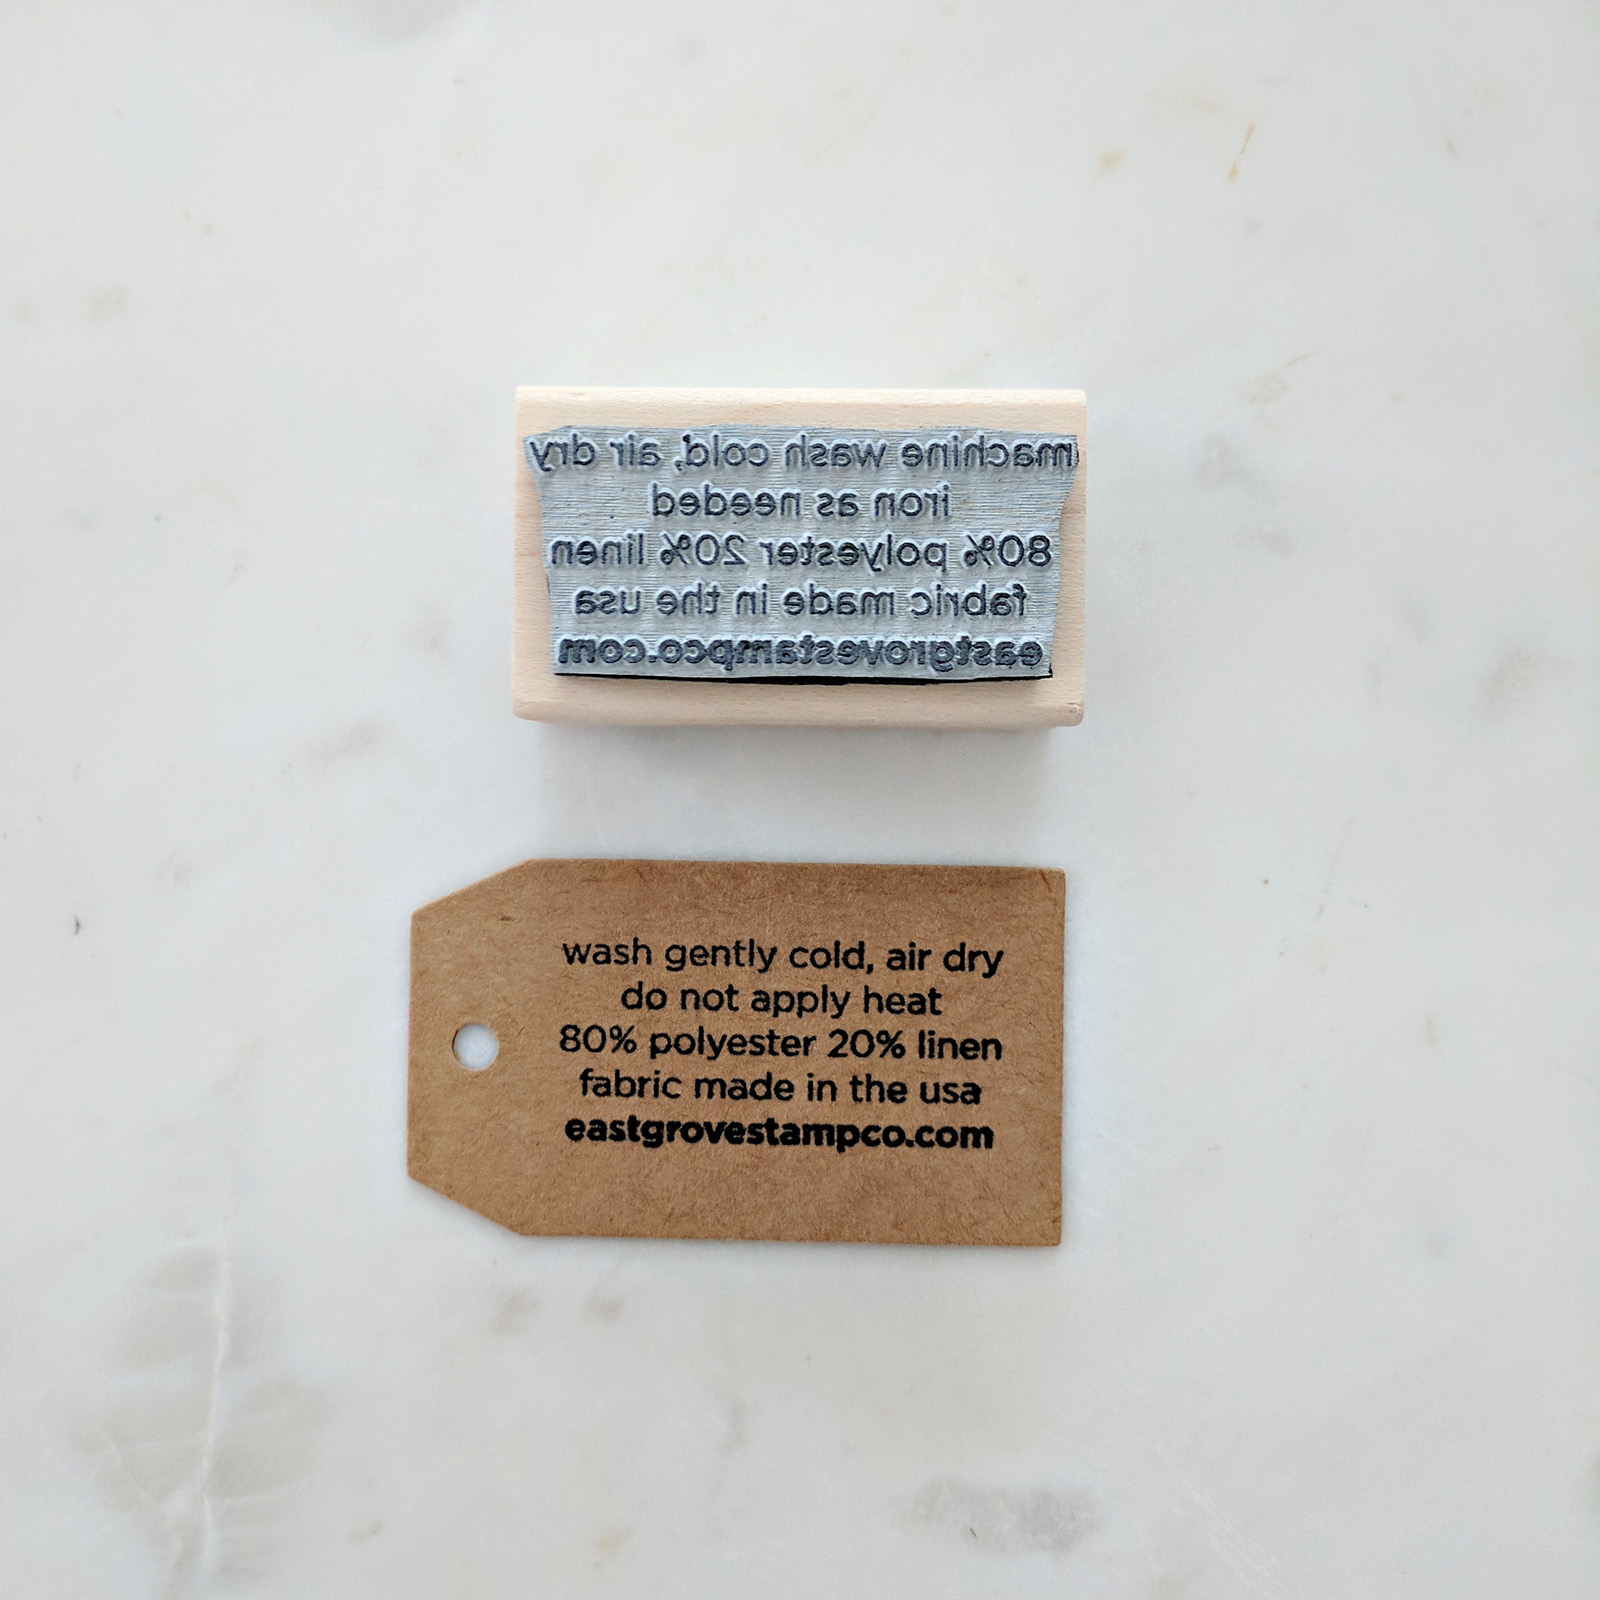 Fabric Tags - When we started working with fabric, we needed a way to call out the care instructions. These tags are attached to our fabric products in-lieu of a traditional sewn tag.